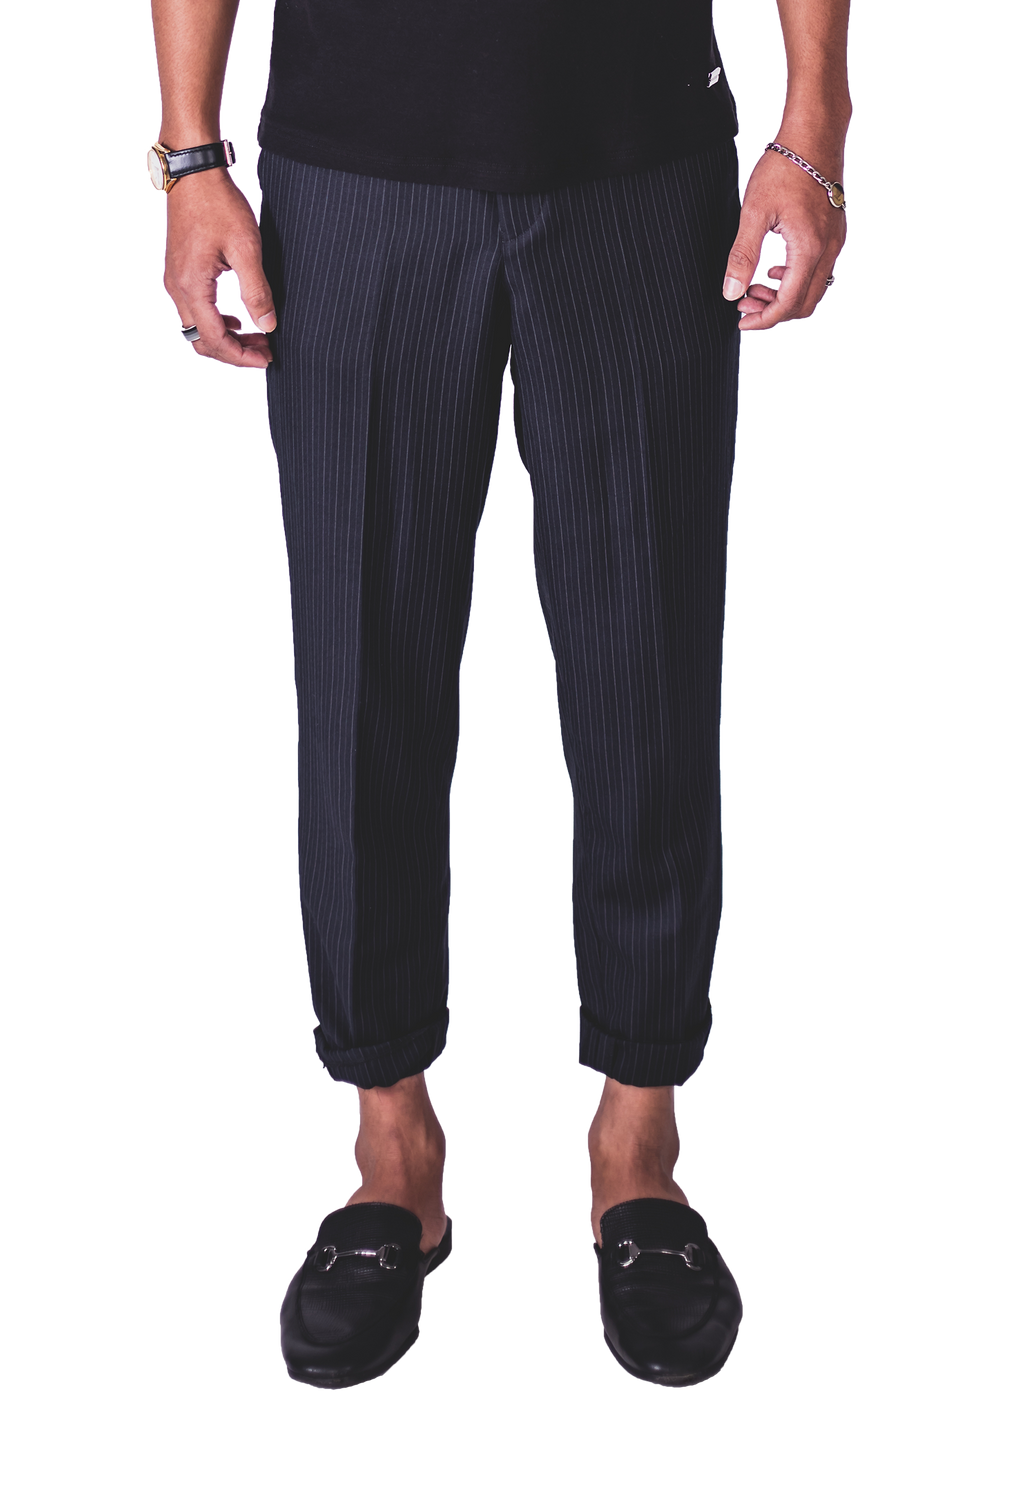 Faree' Homme Cashmere Cropped Oversized Pinstripe Smart Pants in Charcoal